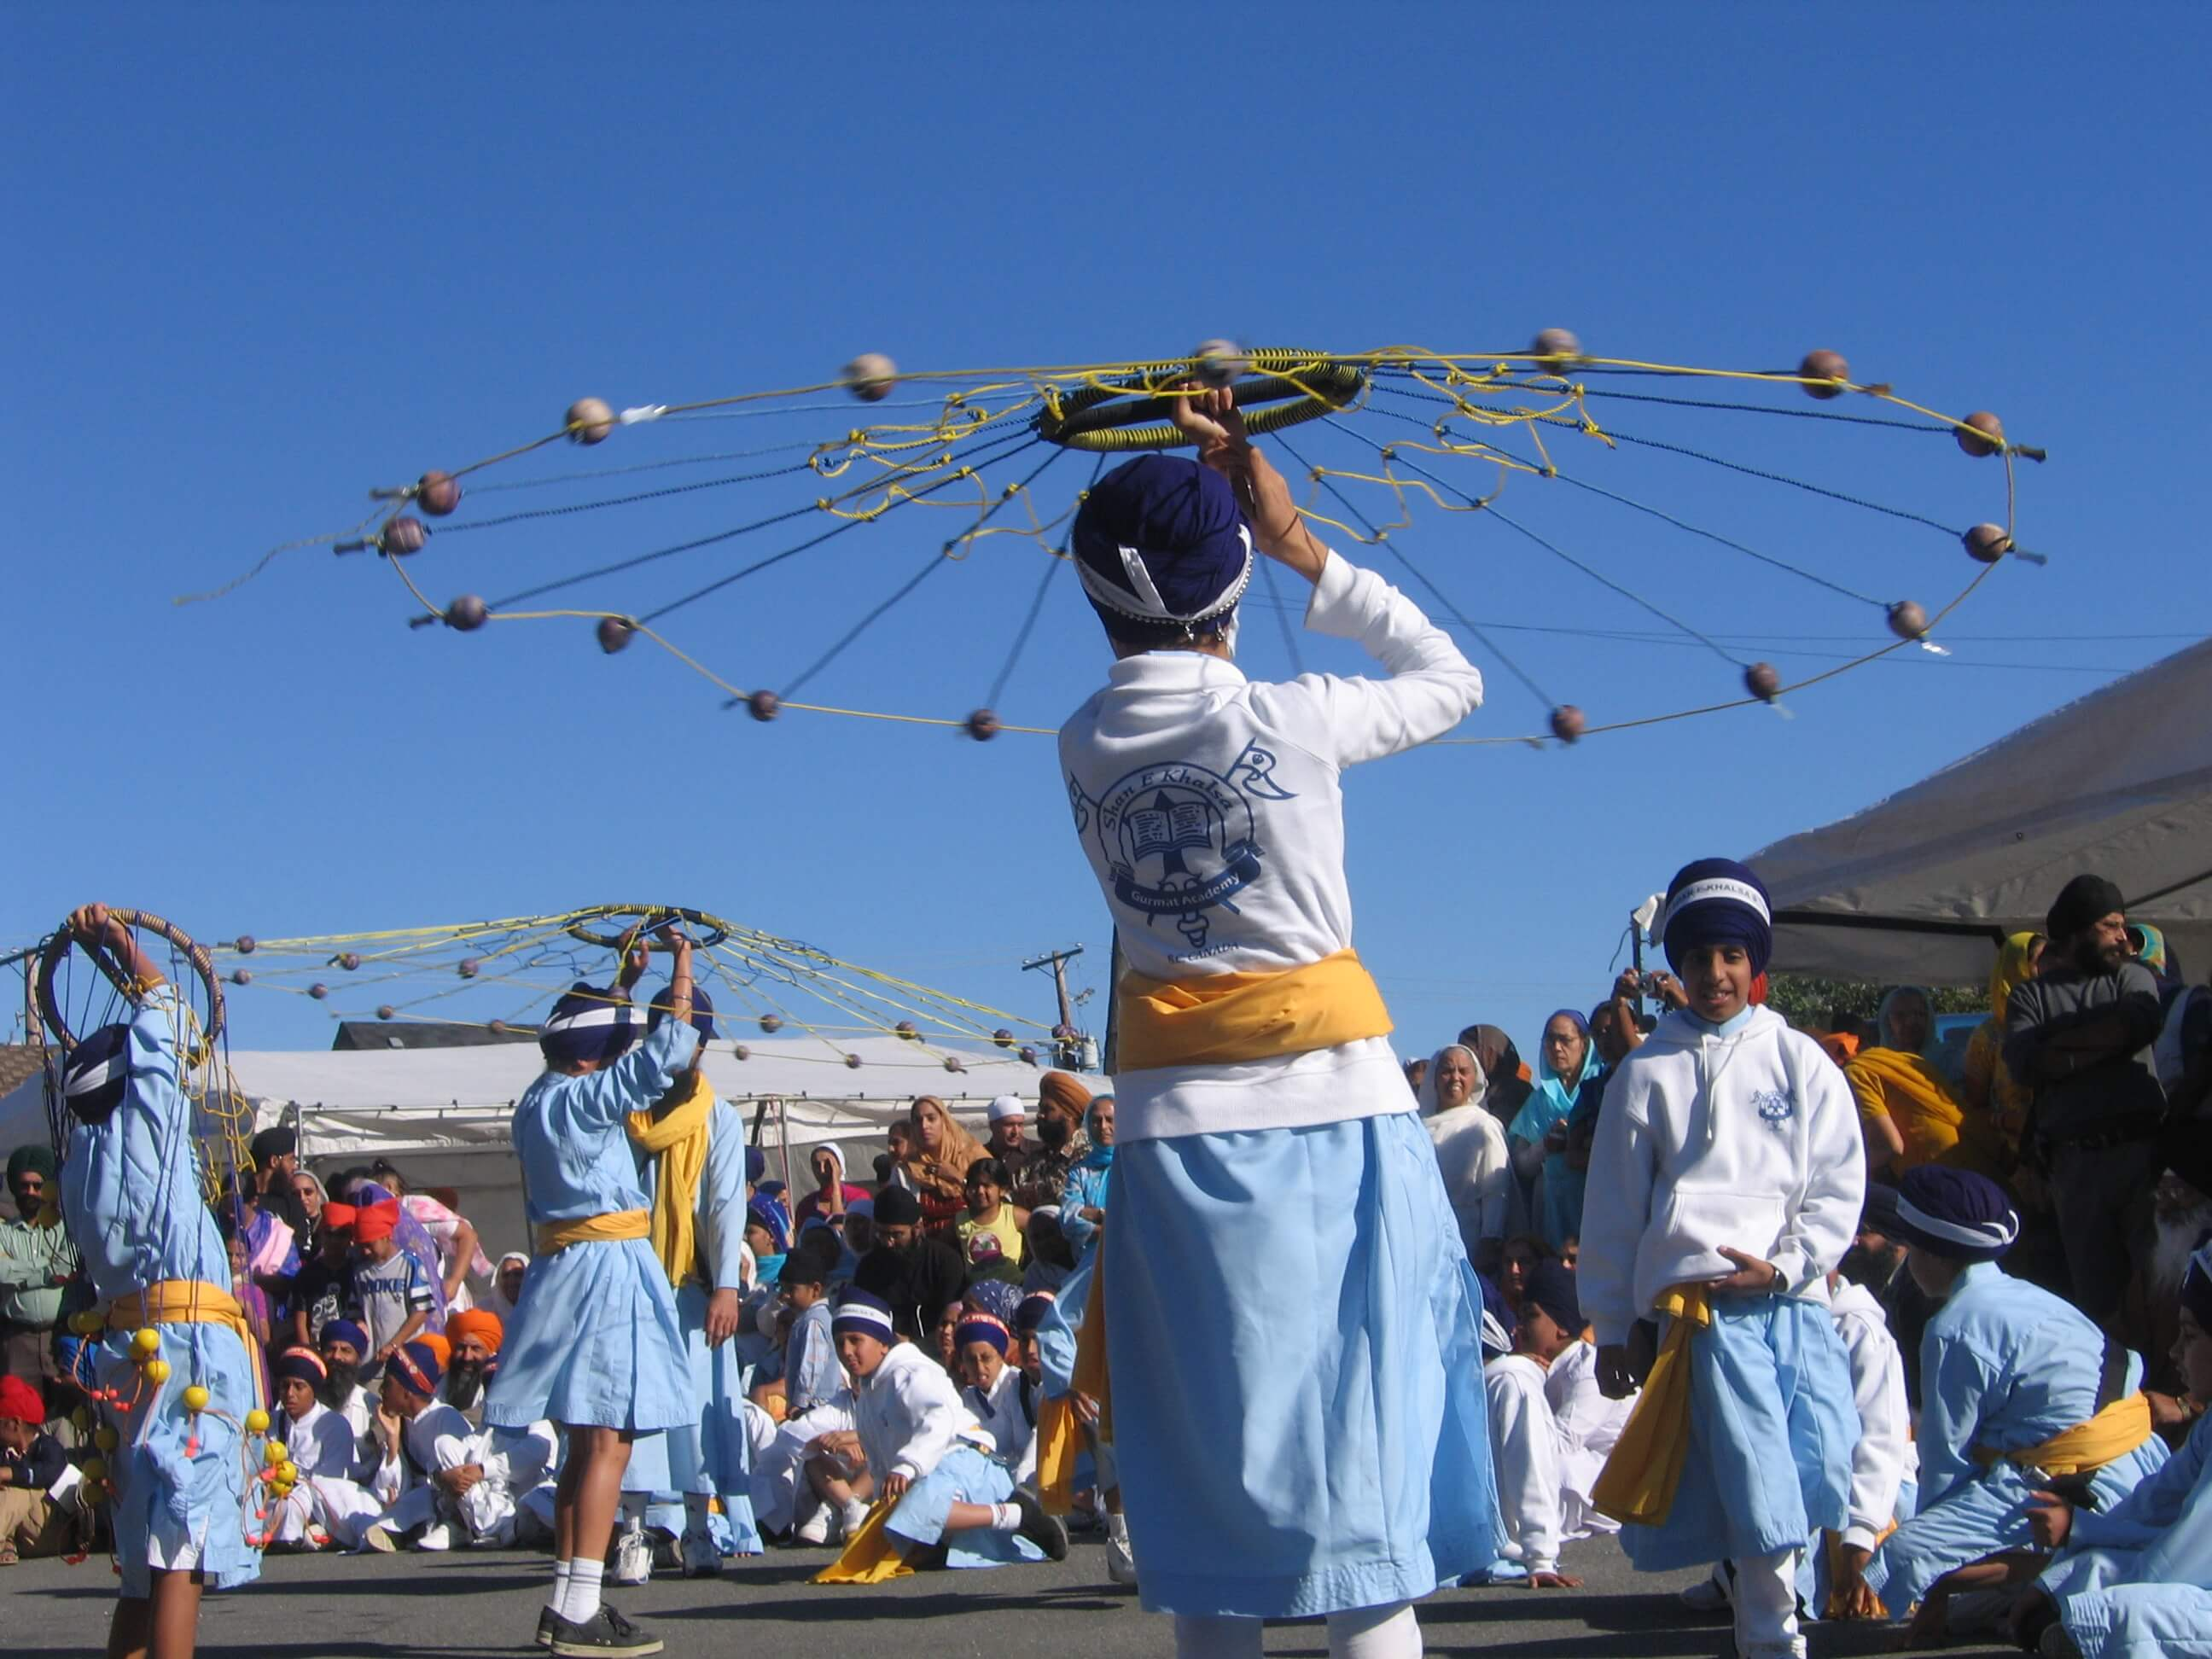 Sikh students performing sikh martial arts at a sikh event